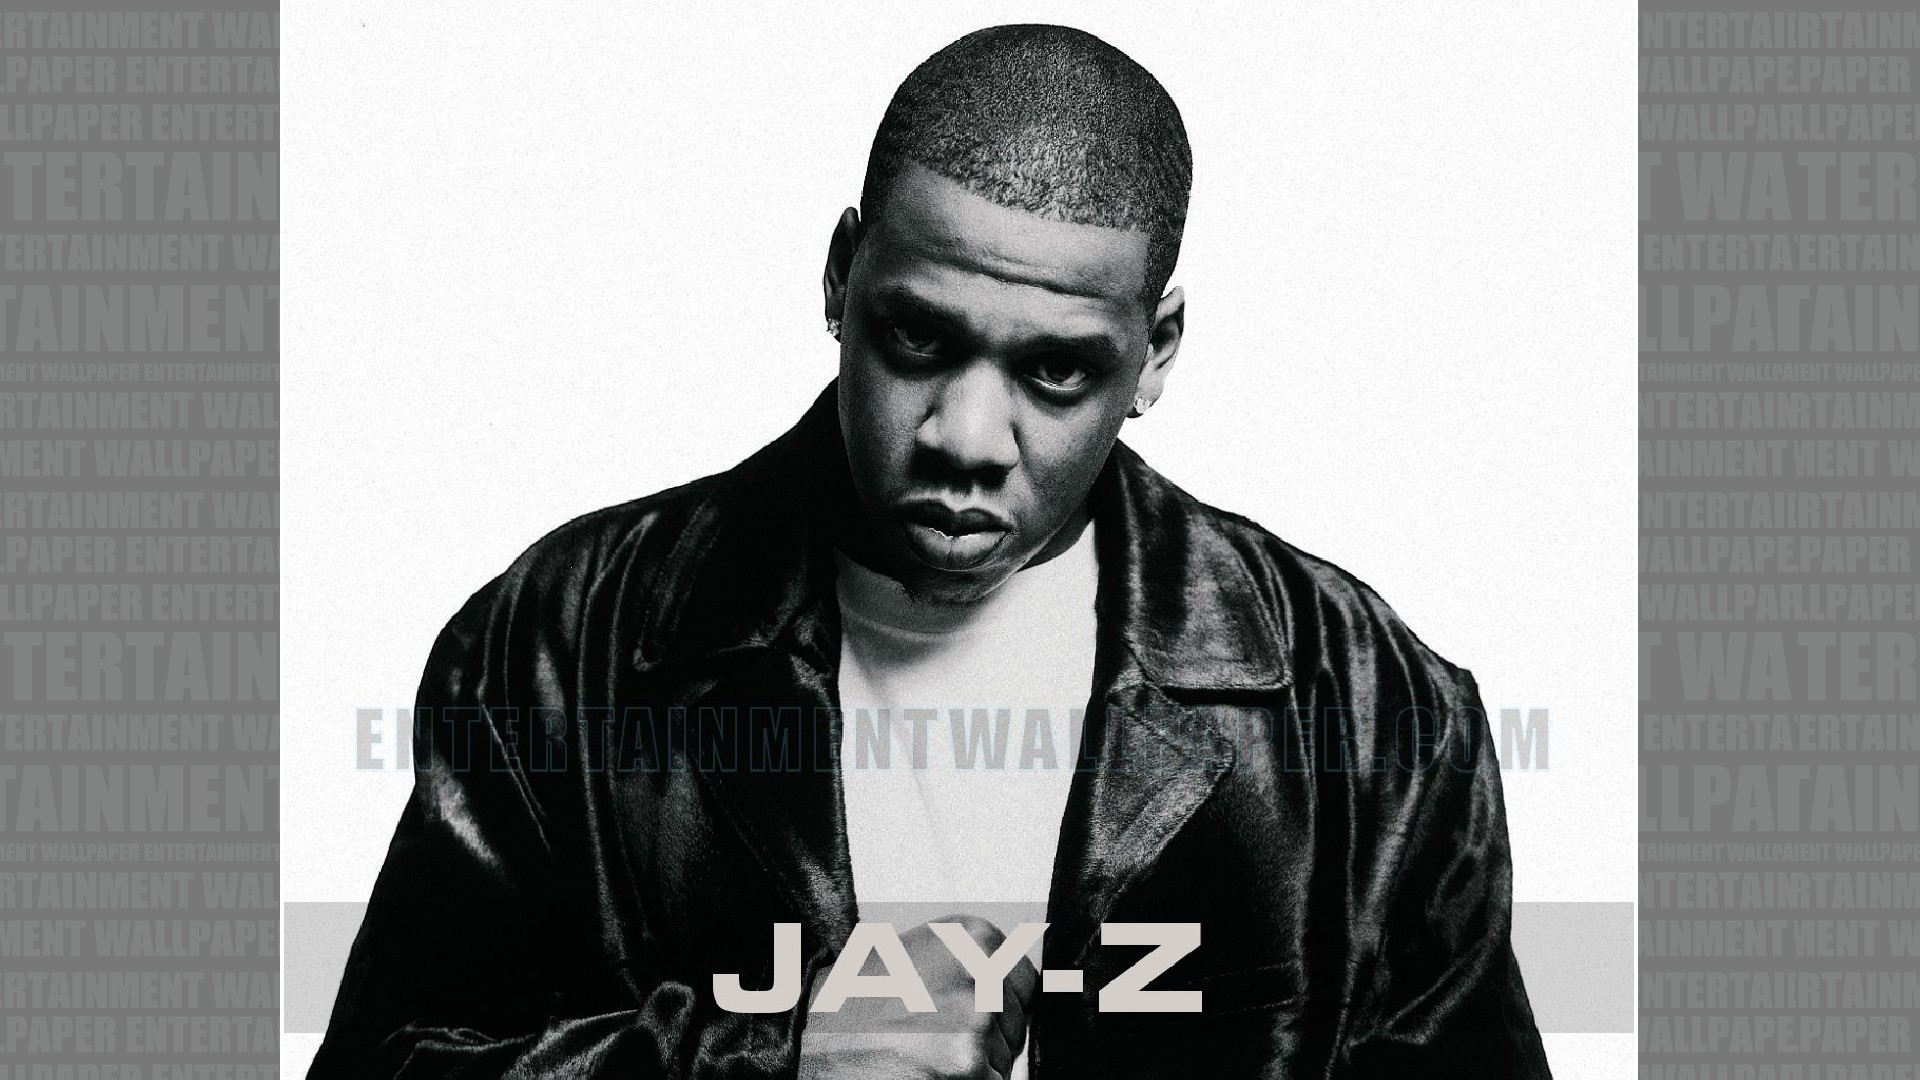 Jay-Z Wallpaper – Original size, download now.